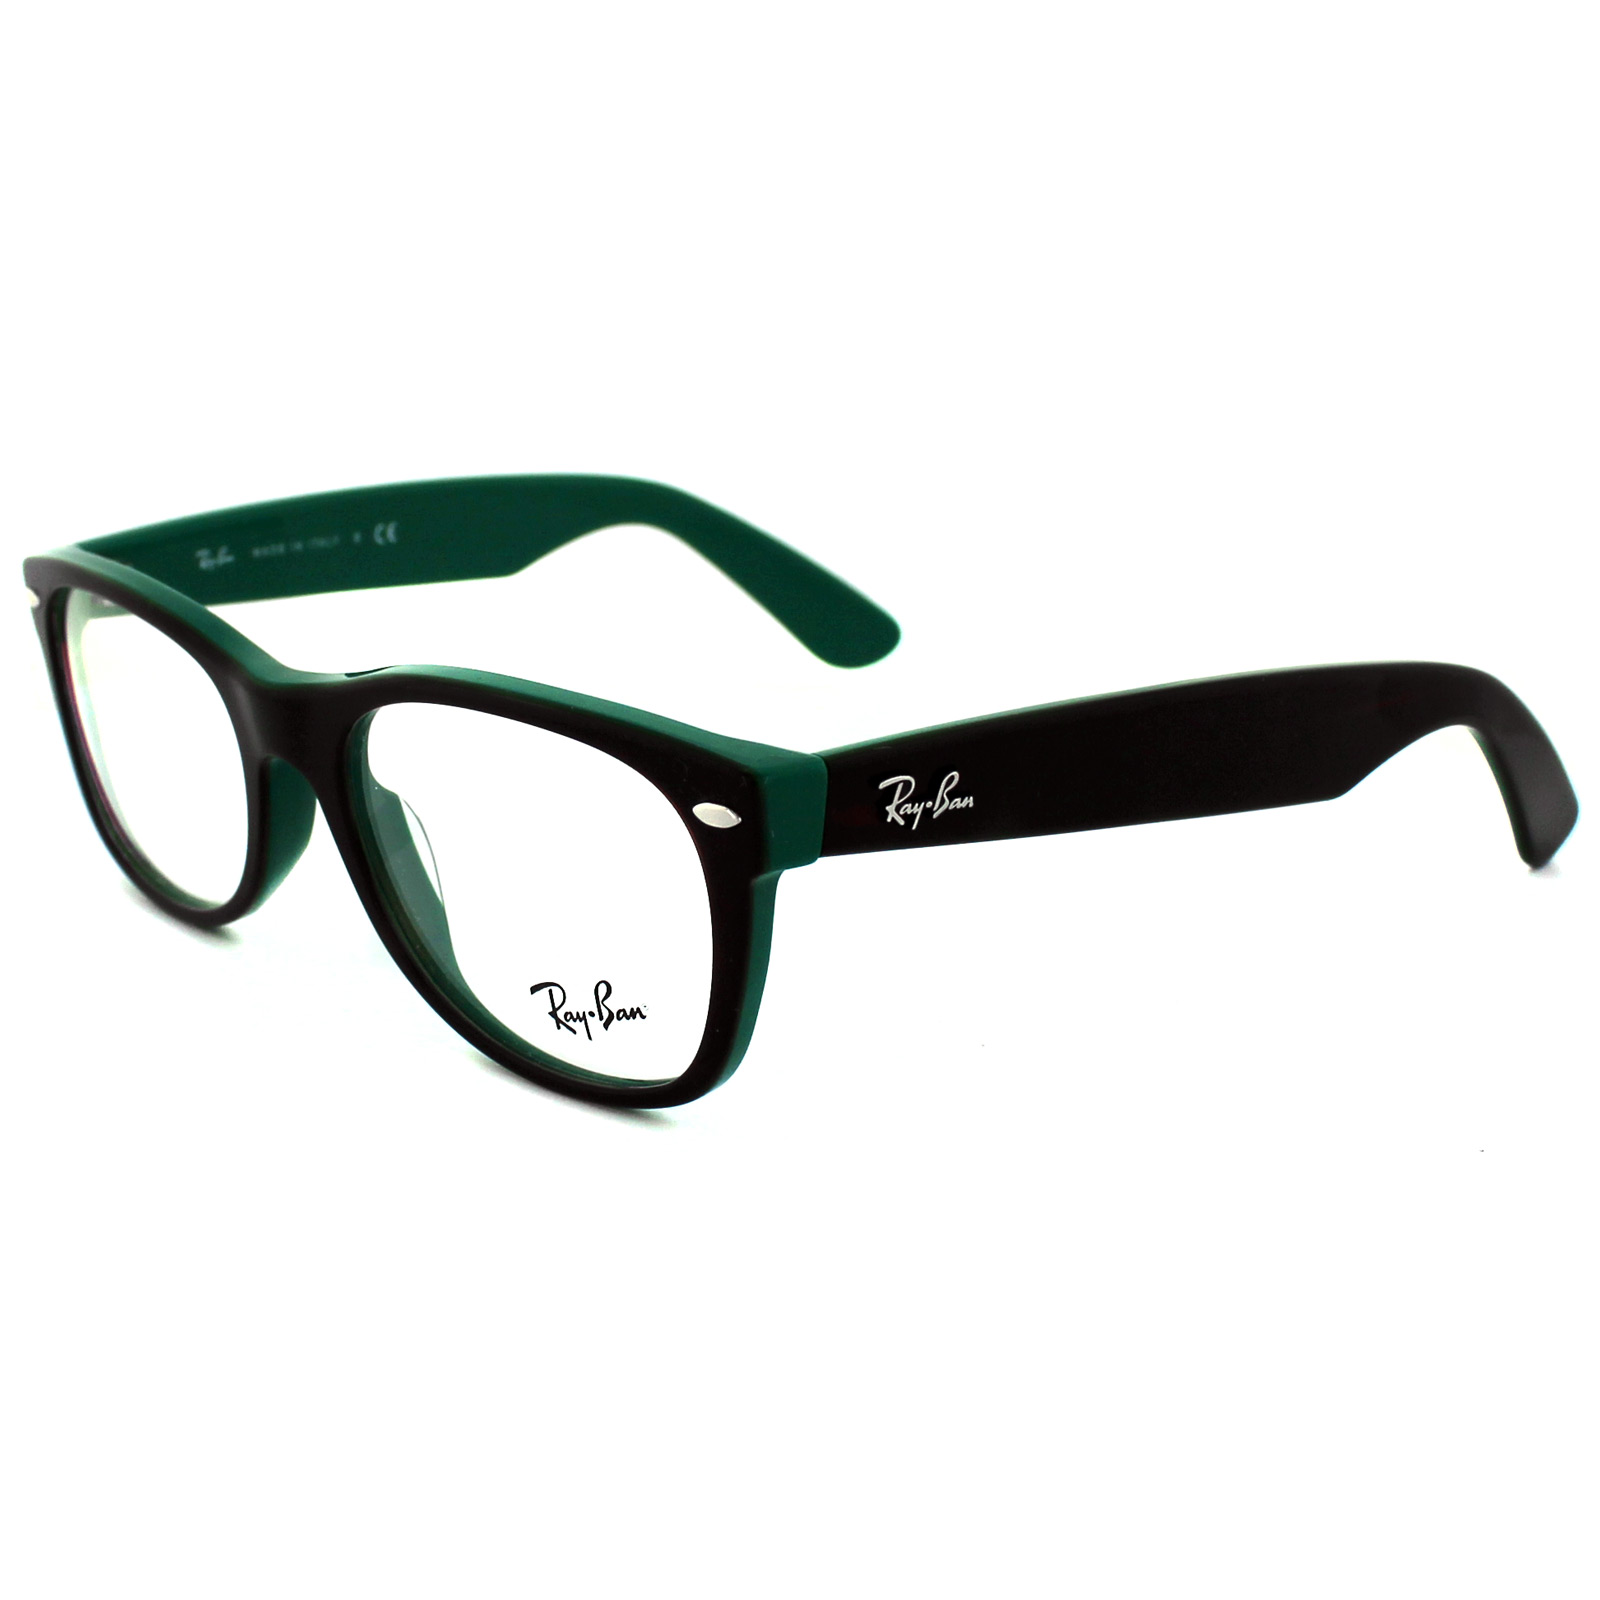 Large Frame Wayfarer Glasses : Large Frame Ray Ban Wayfarer Our Pride Academy